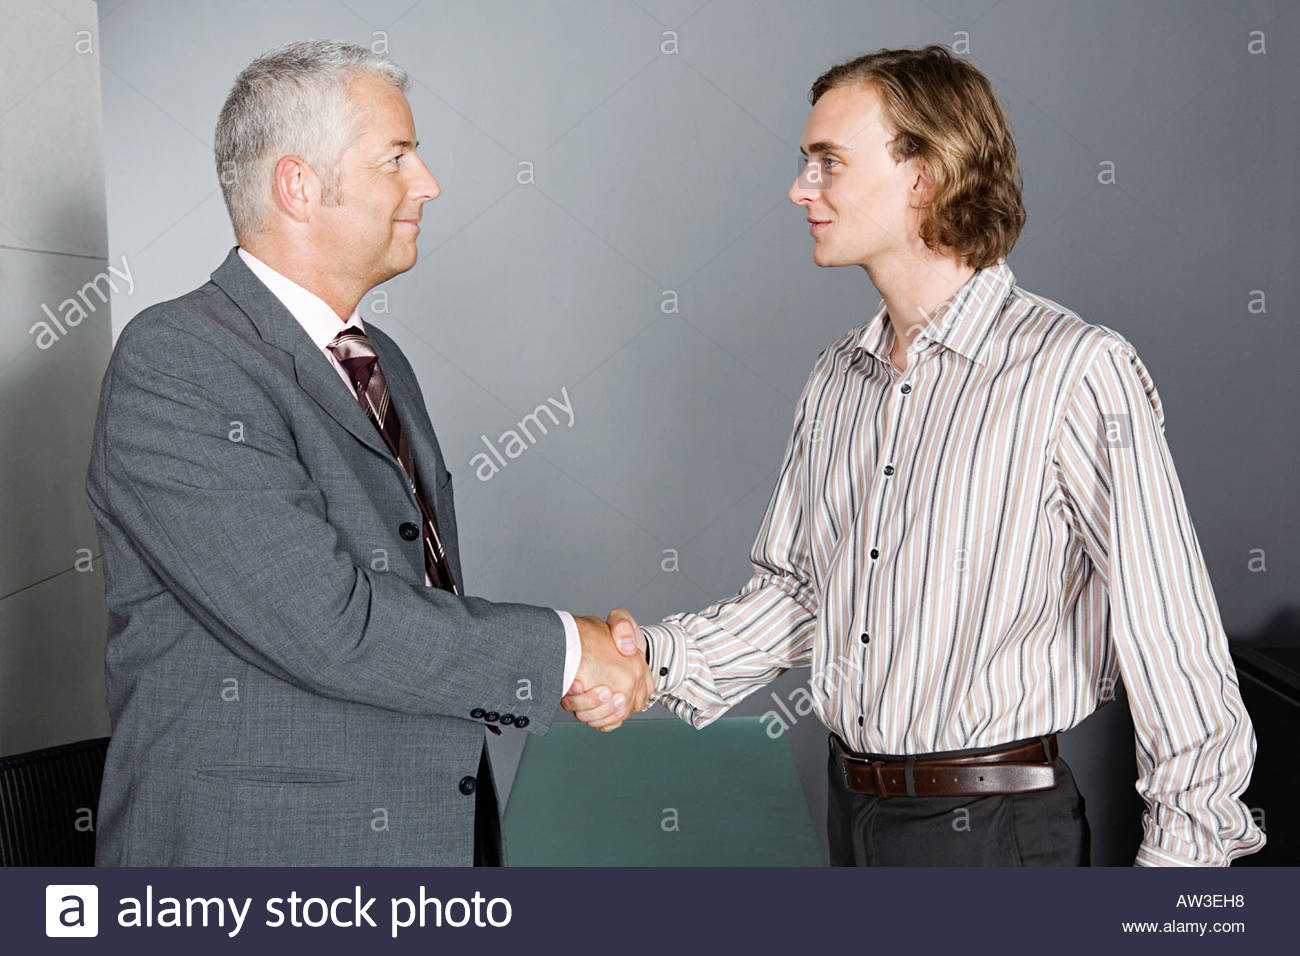 Mature businessman and younger man shake hands - Stock Image